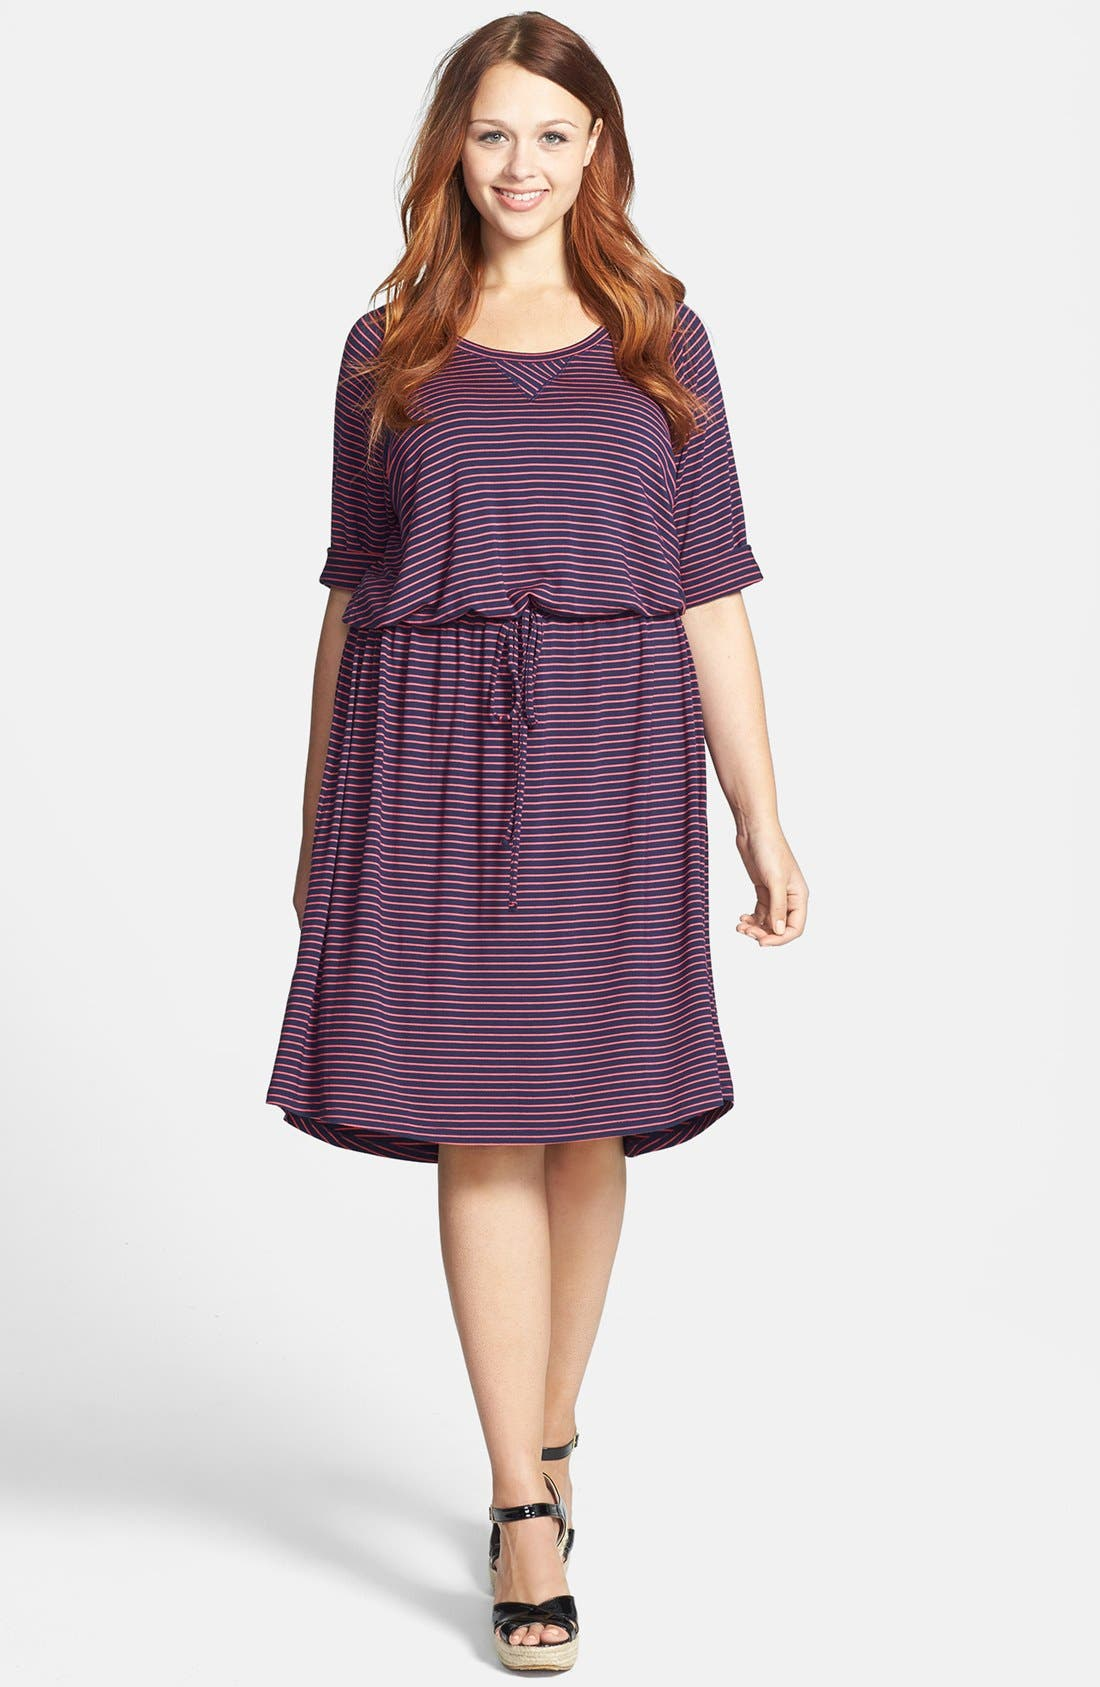 Alternate Image 1 Selected - Caslon® Three Quarter Sleeve Knit Dress (Plus Size)